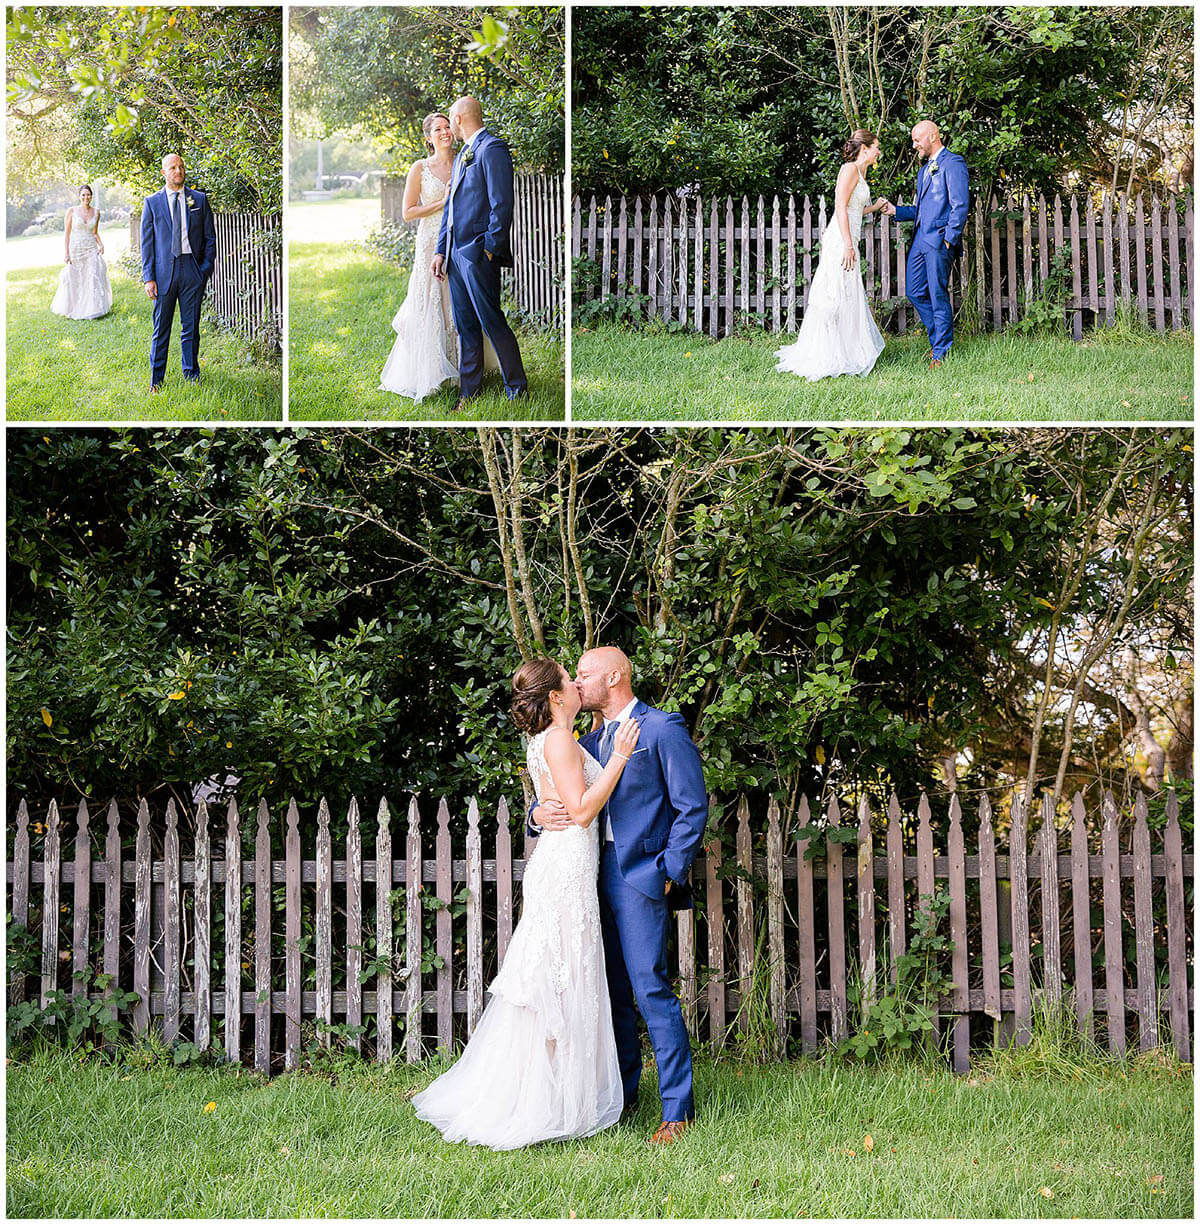 Cassie and Drew's first look before their wedding - photo collage